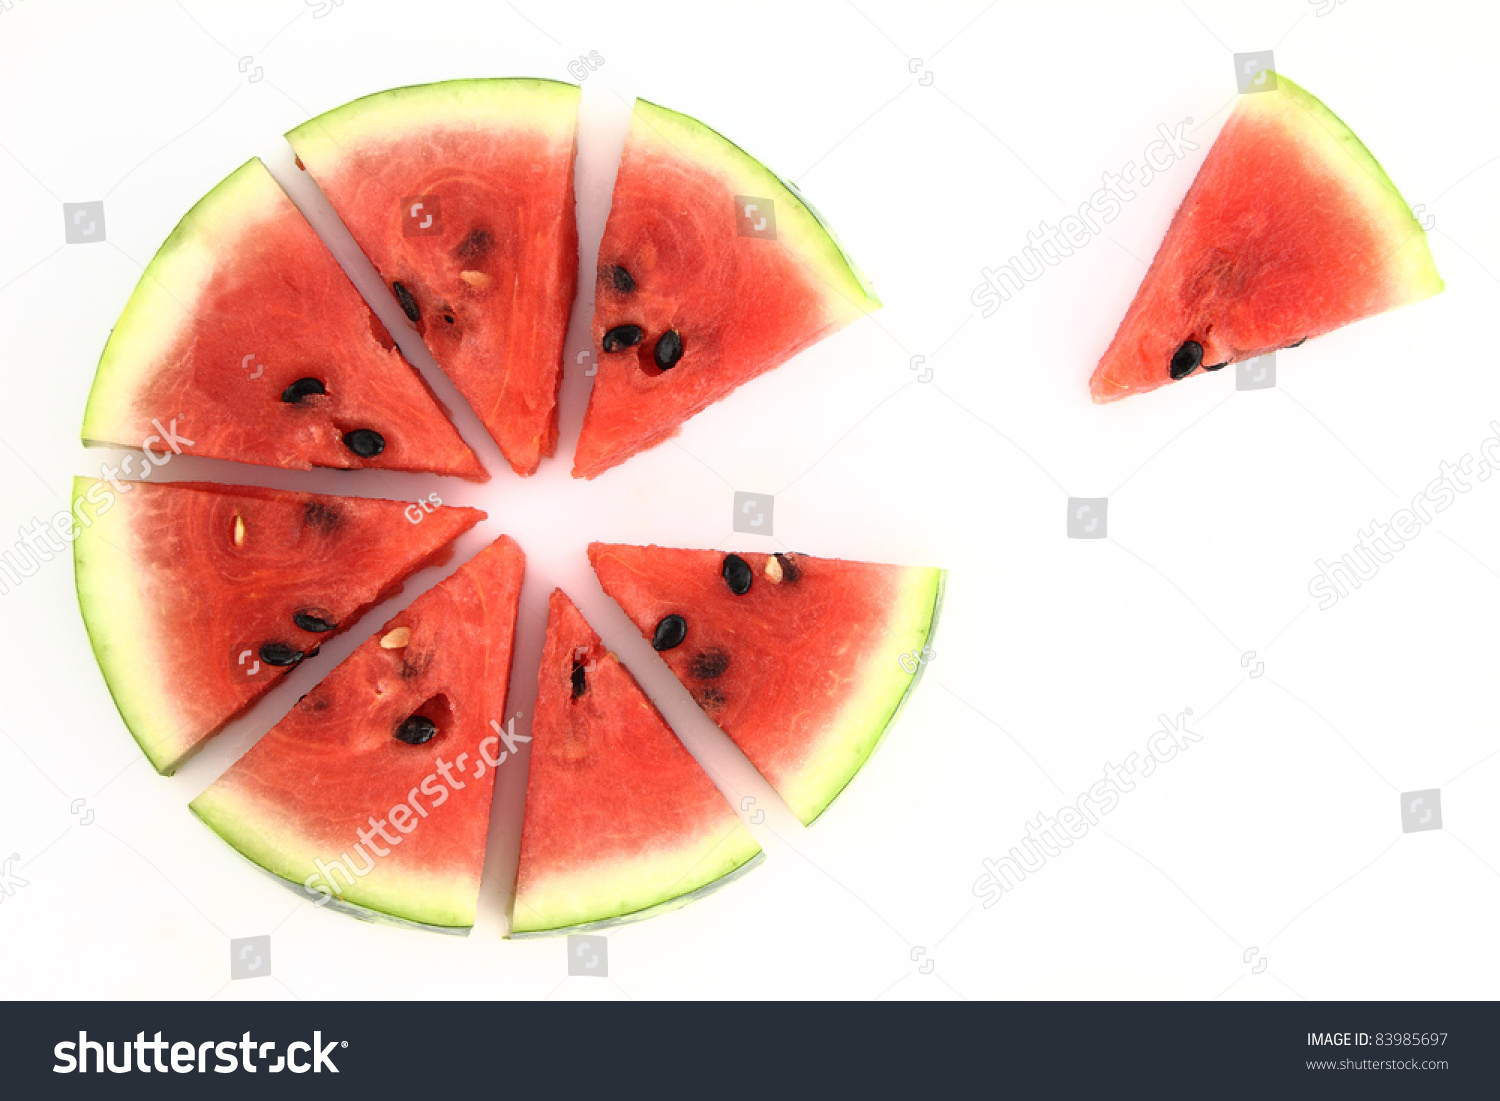 Pie chart watermelon slices stock photo 83985697 shutterstock pie chart of watermelon slices nvjuhfo Choice Image